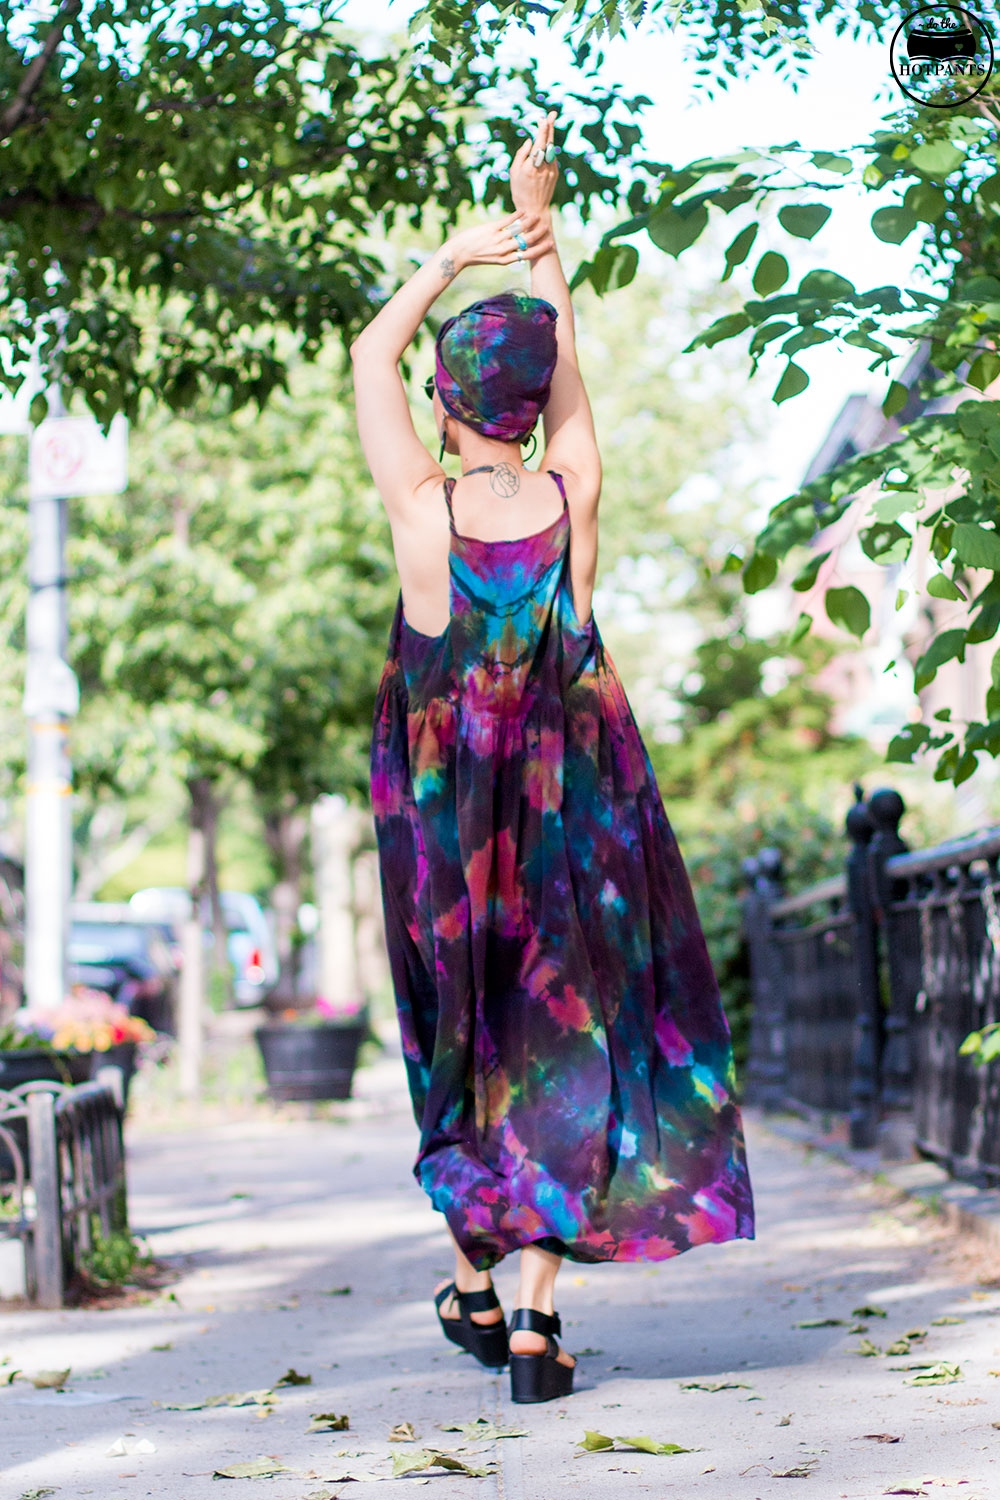 Do The Hotpants Dana Suchow Tie Dye Dress Maxi Flowy Summer Dress Tiedye Headwrap Turban Fashion IMG_9902